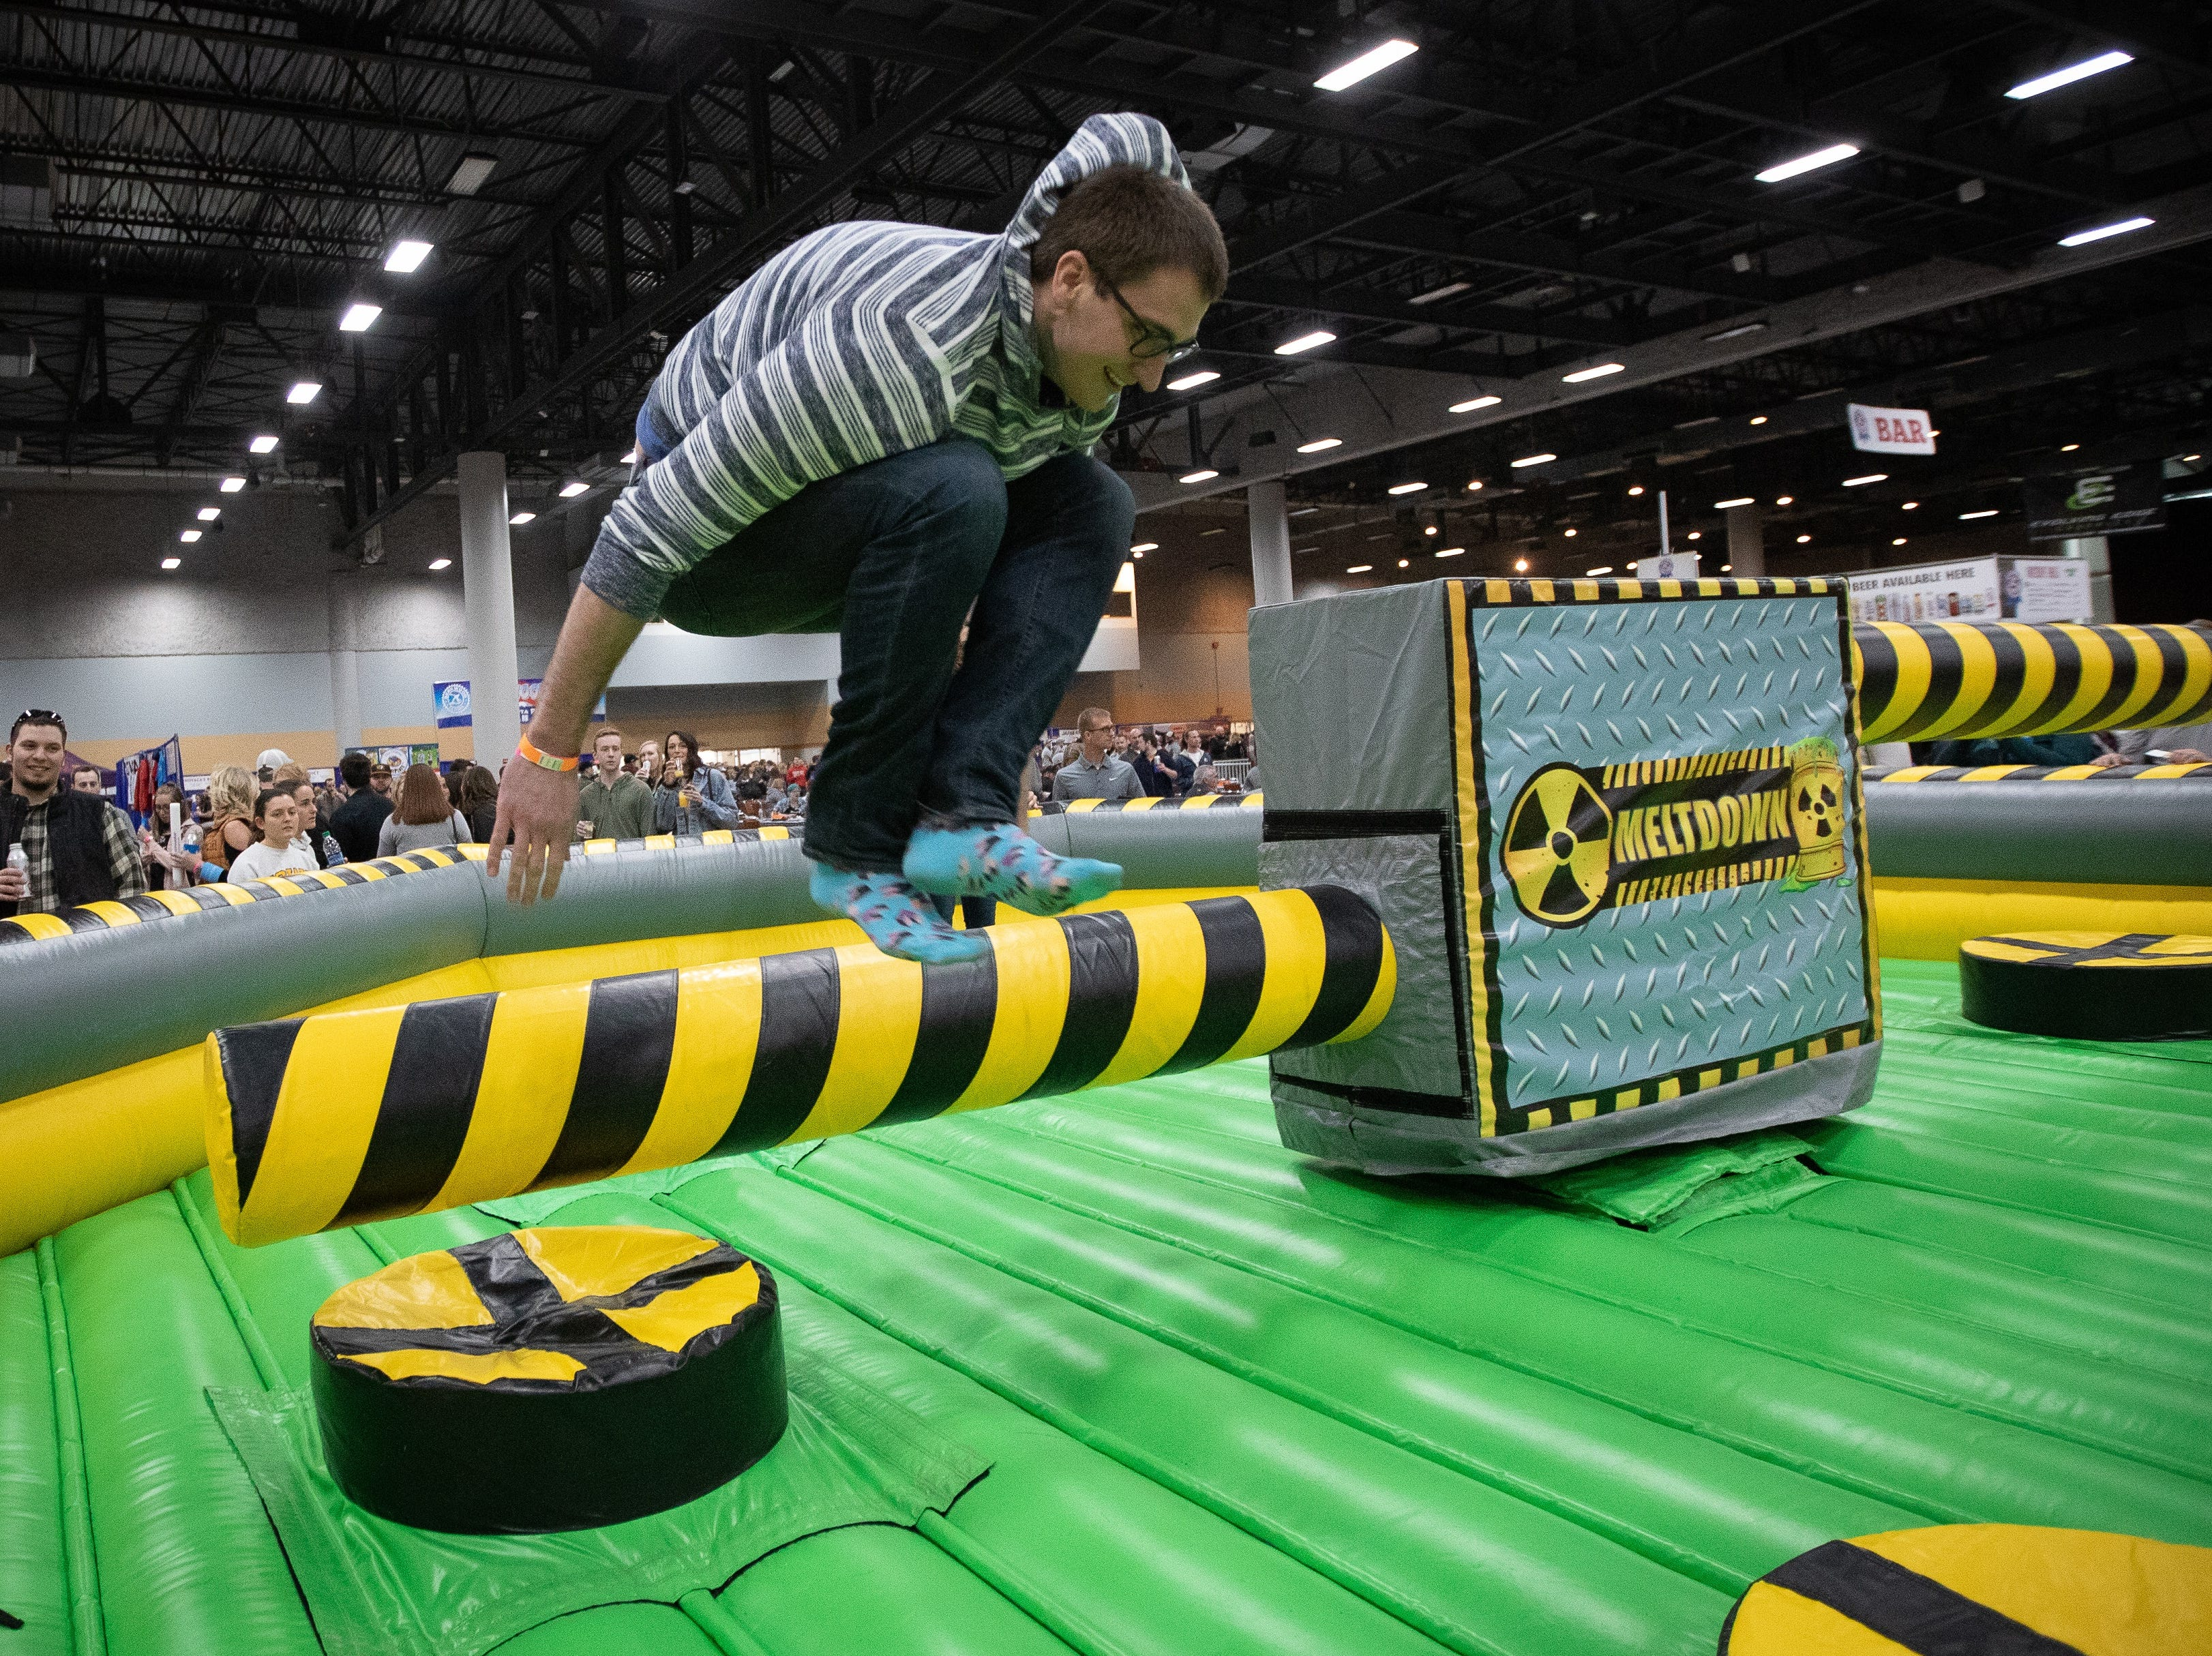 Ted Friedman, of Ankeny, participates in the Meltdown during the Bacon Fest at Hy-Vee Hall on Feb. 16, 2019 in Des Moines, Iowa.